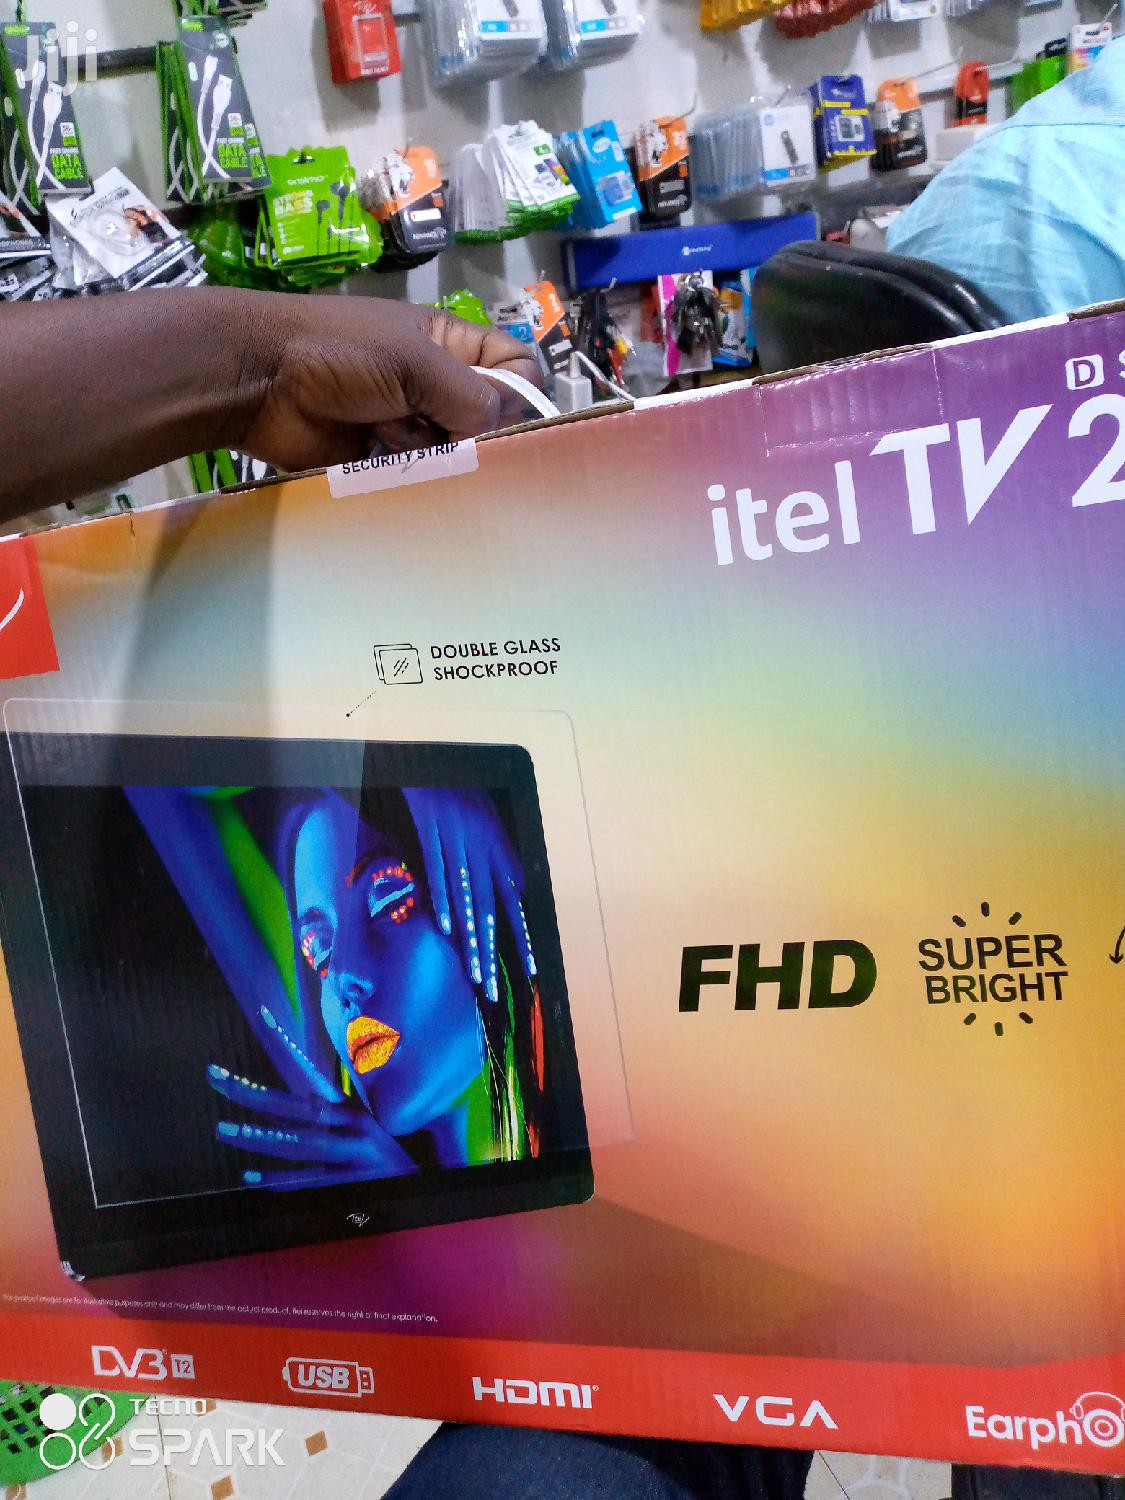 Archive: Itel Tv 24 Inches